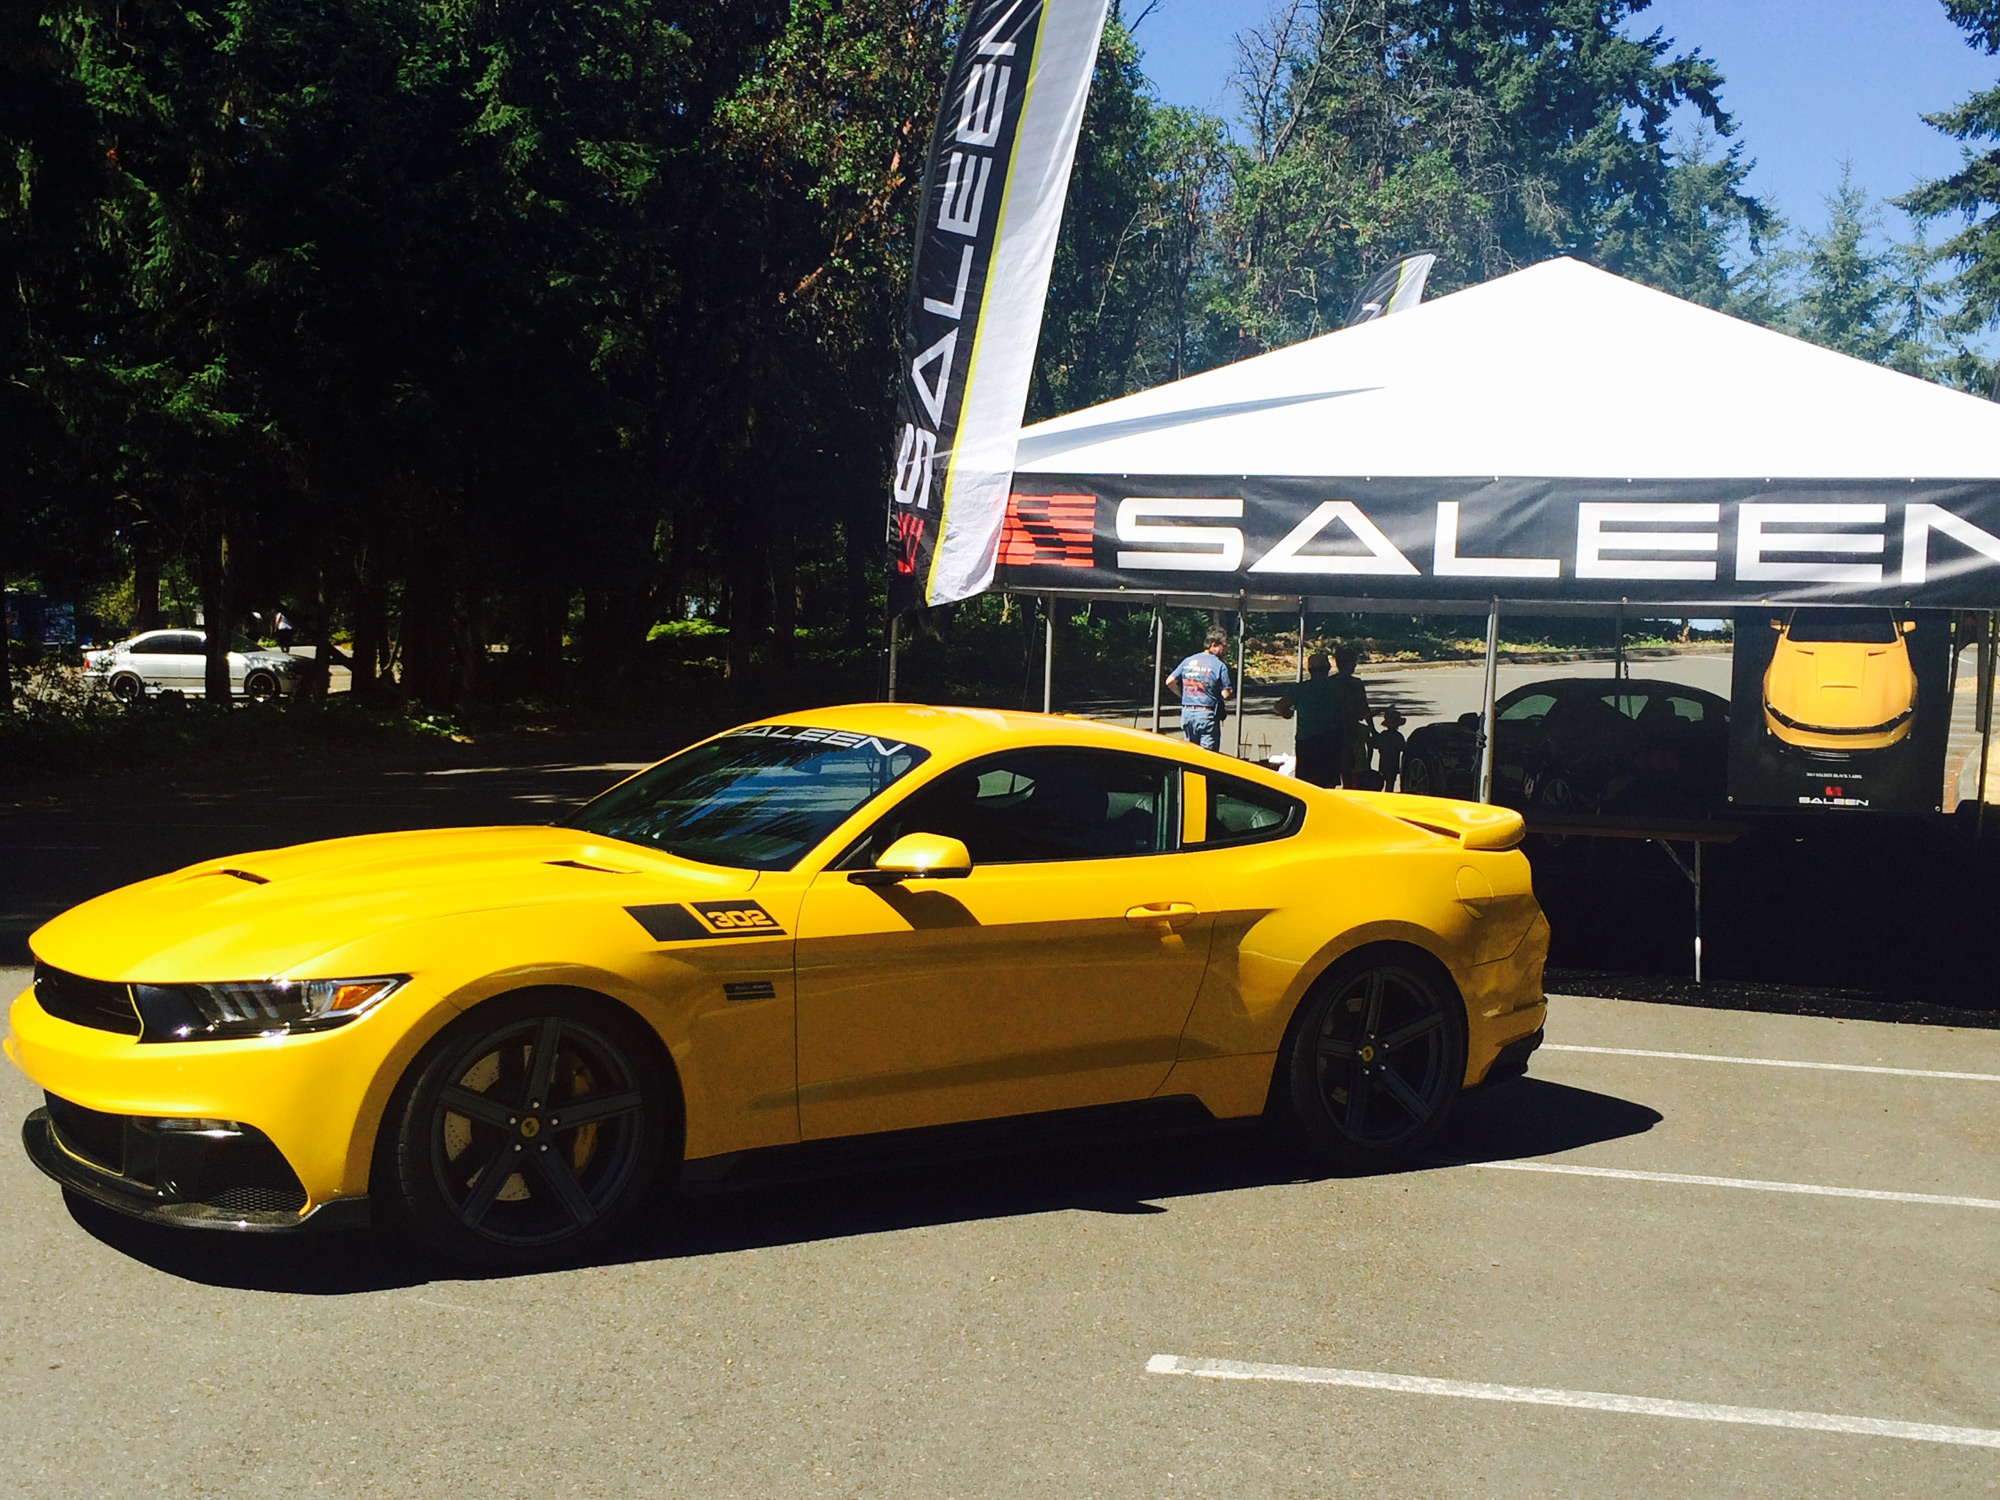 2015 302 Black Label coupe - Mustangs Northwest